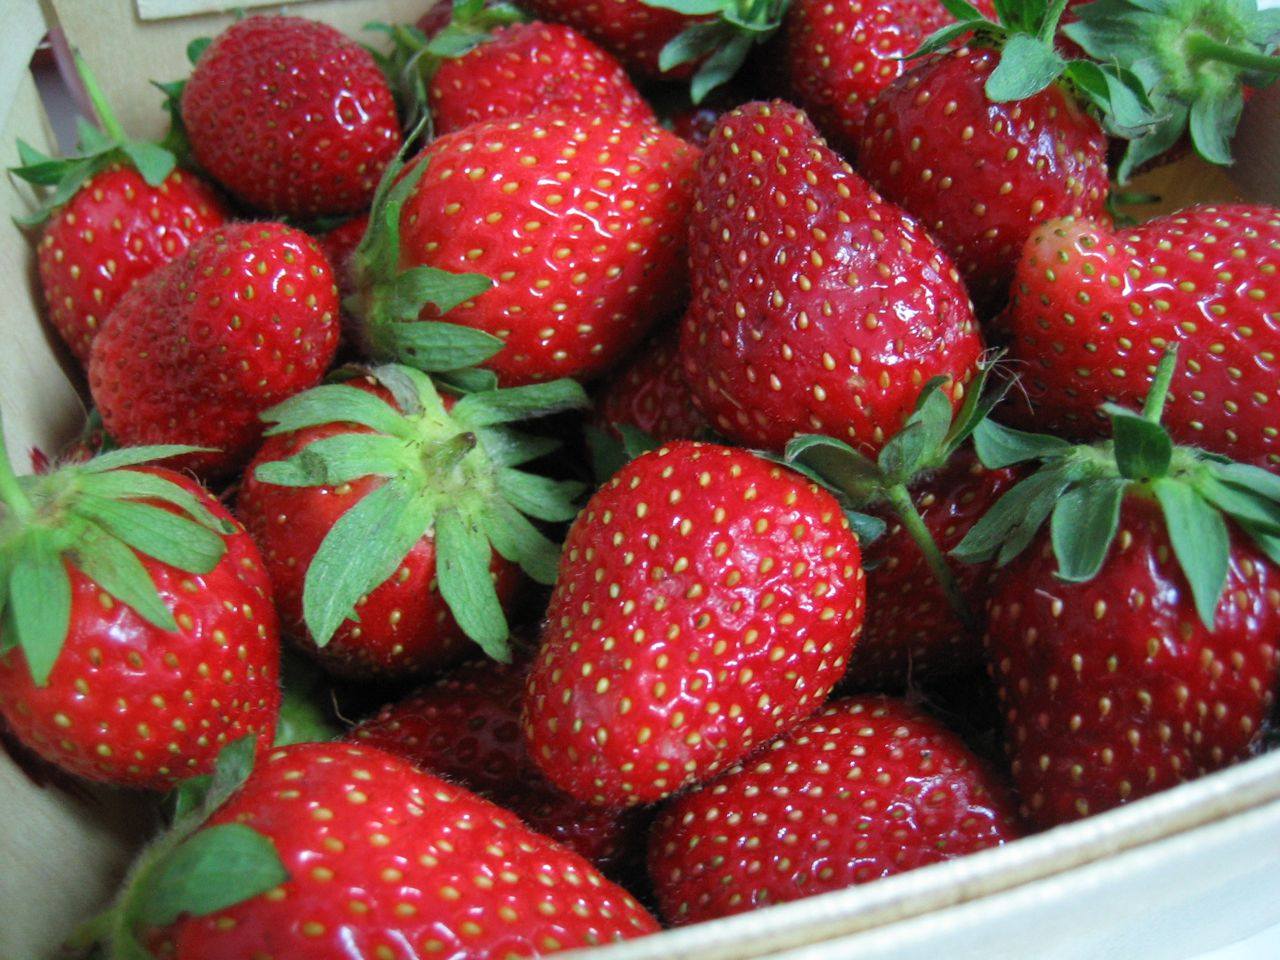 Organic Valley Sunset Strawberry Seeds - 25 Count